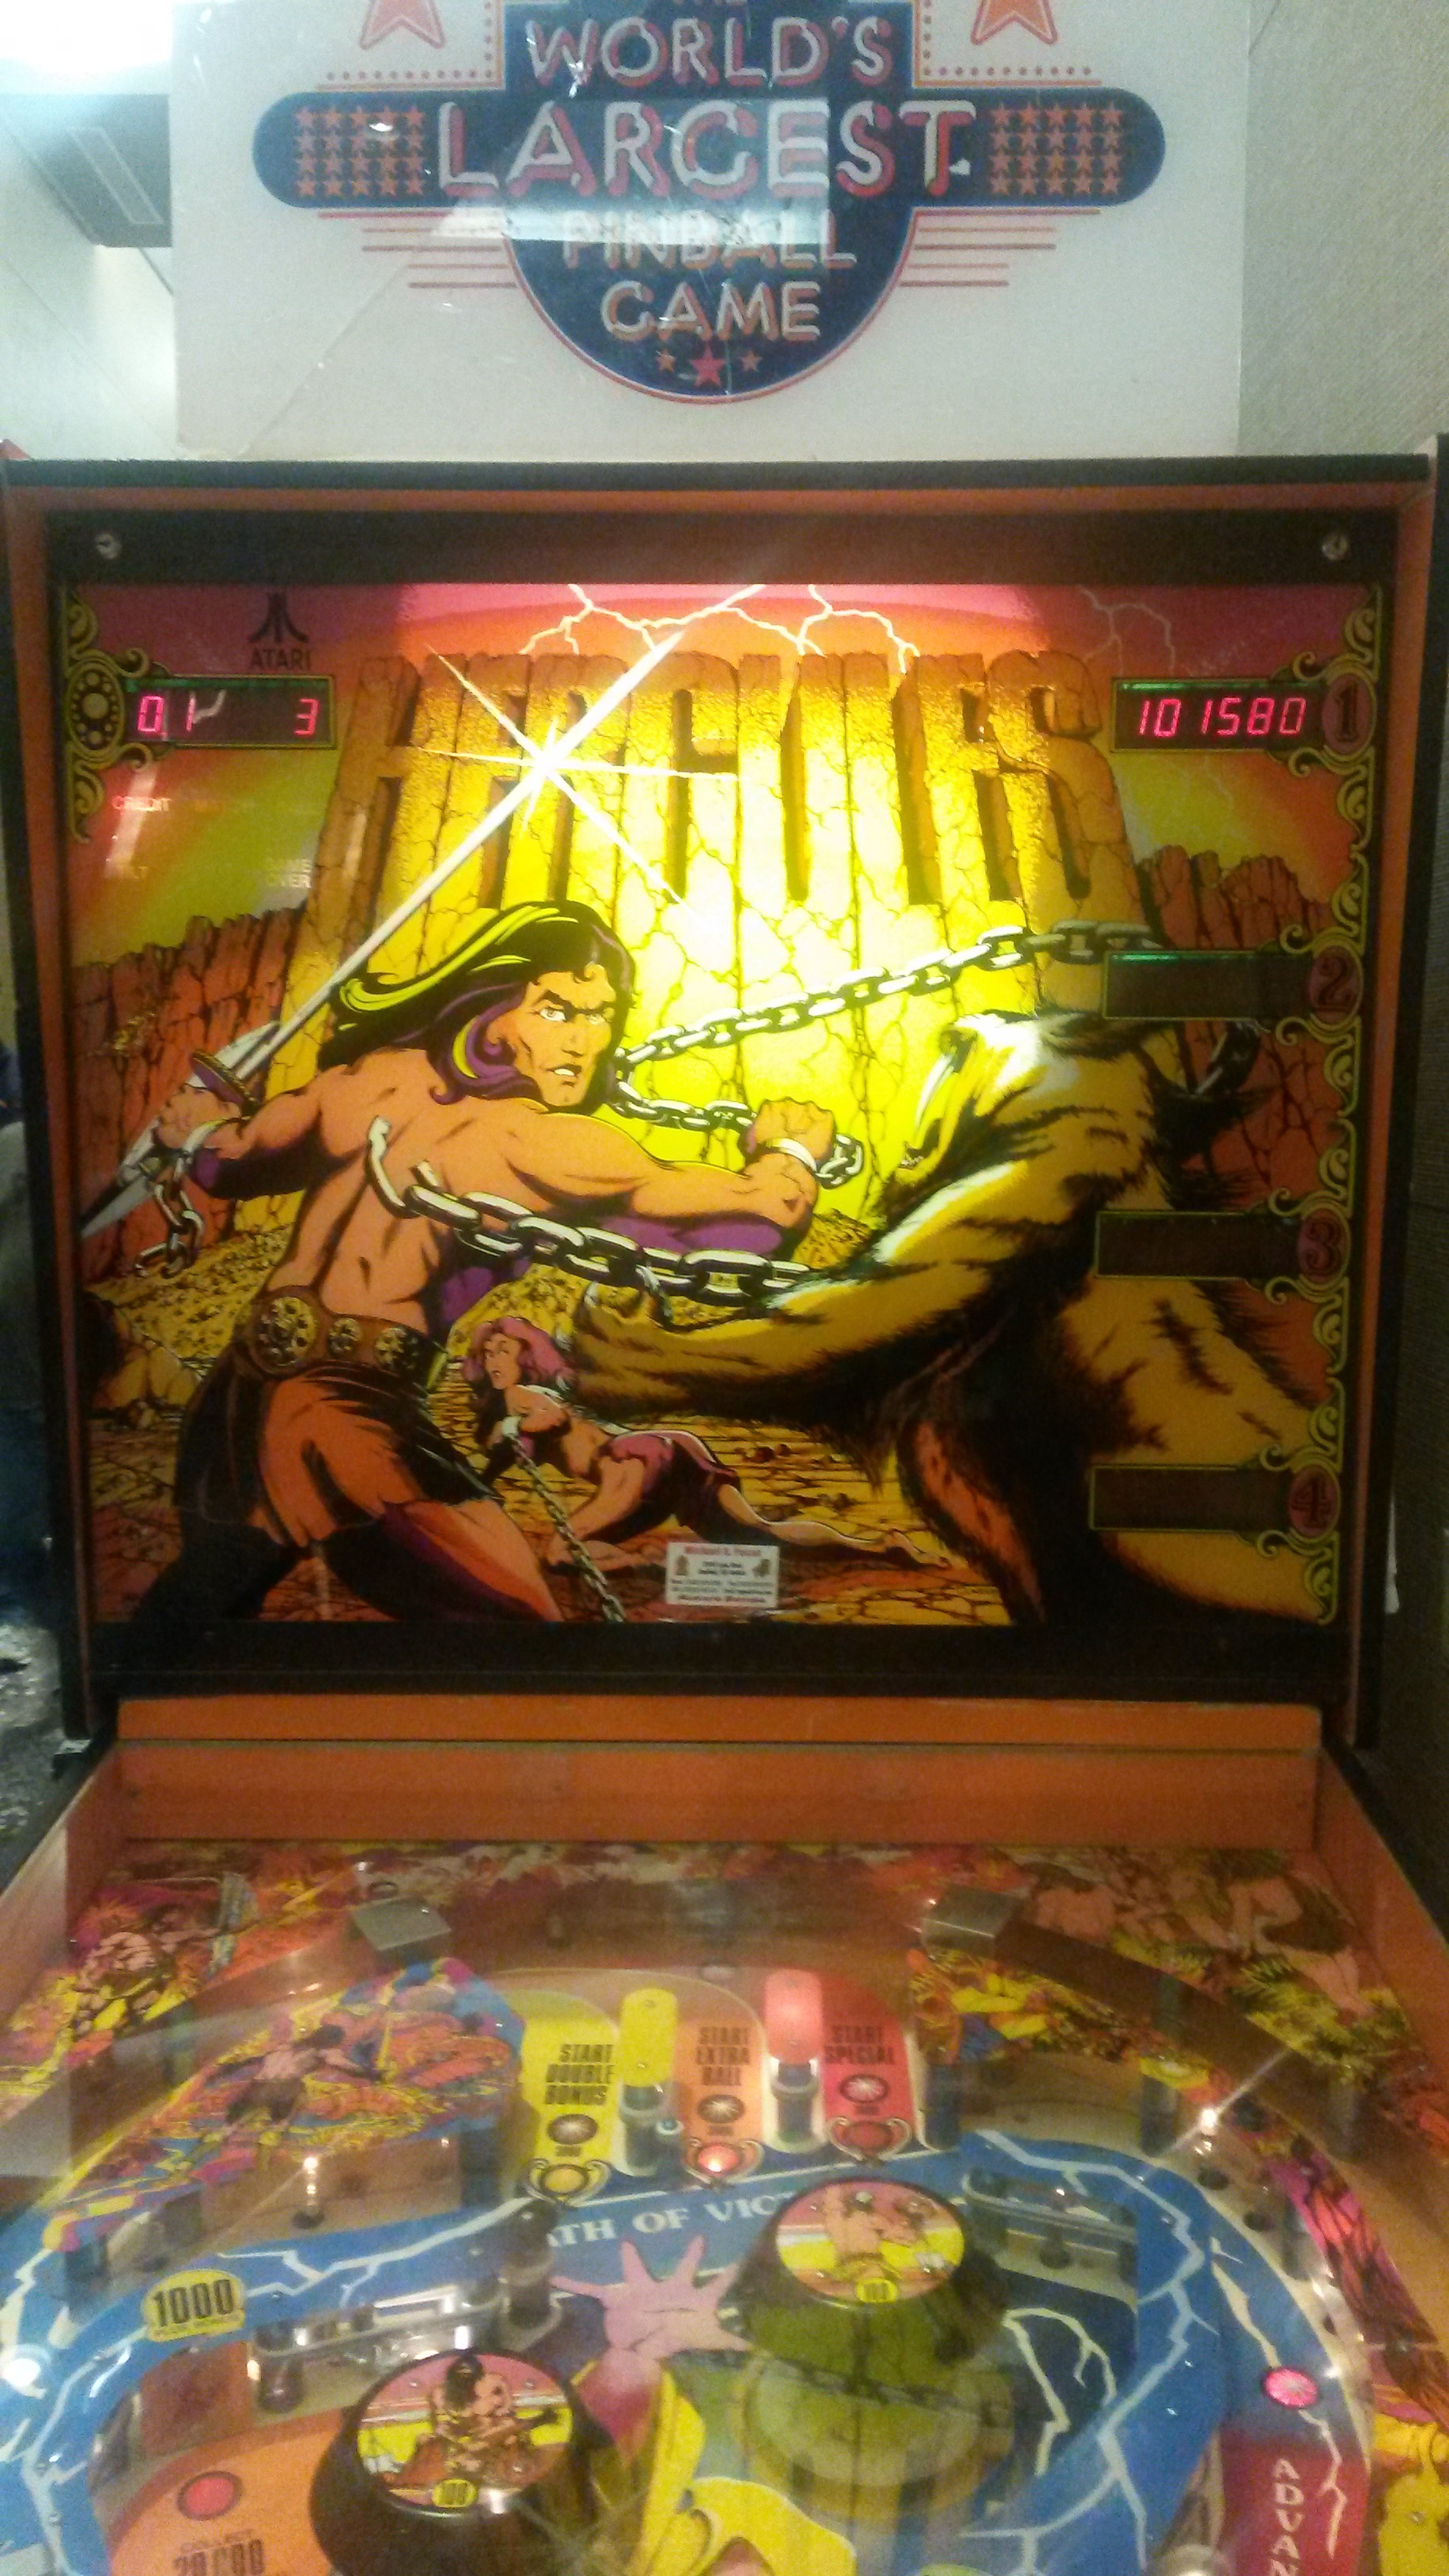 DukeG442: Hercules (Pinball: 3 Balls) 101,580 points on 2015-10-16 00:11:43